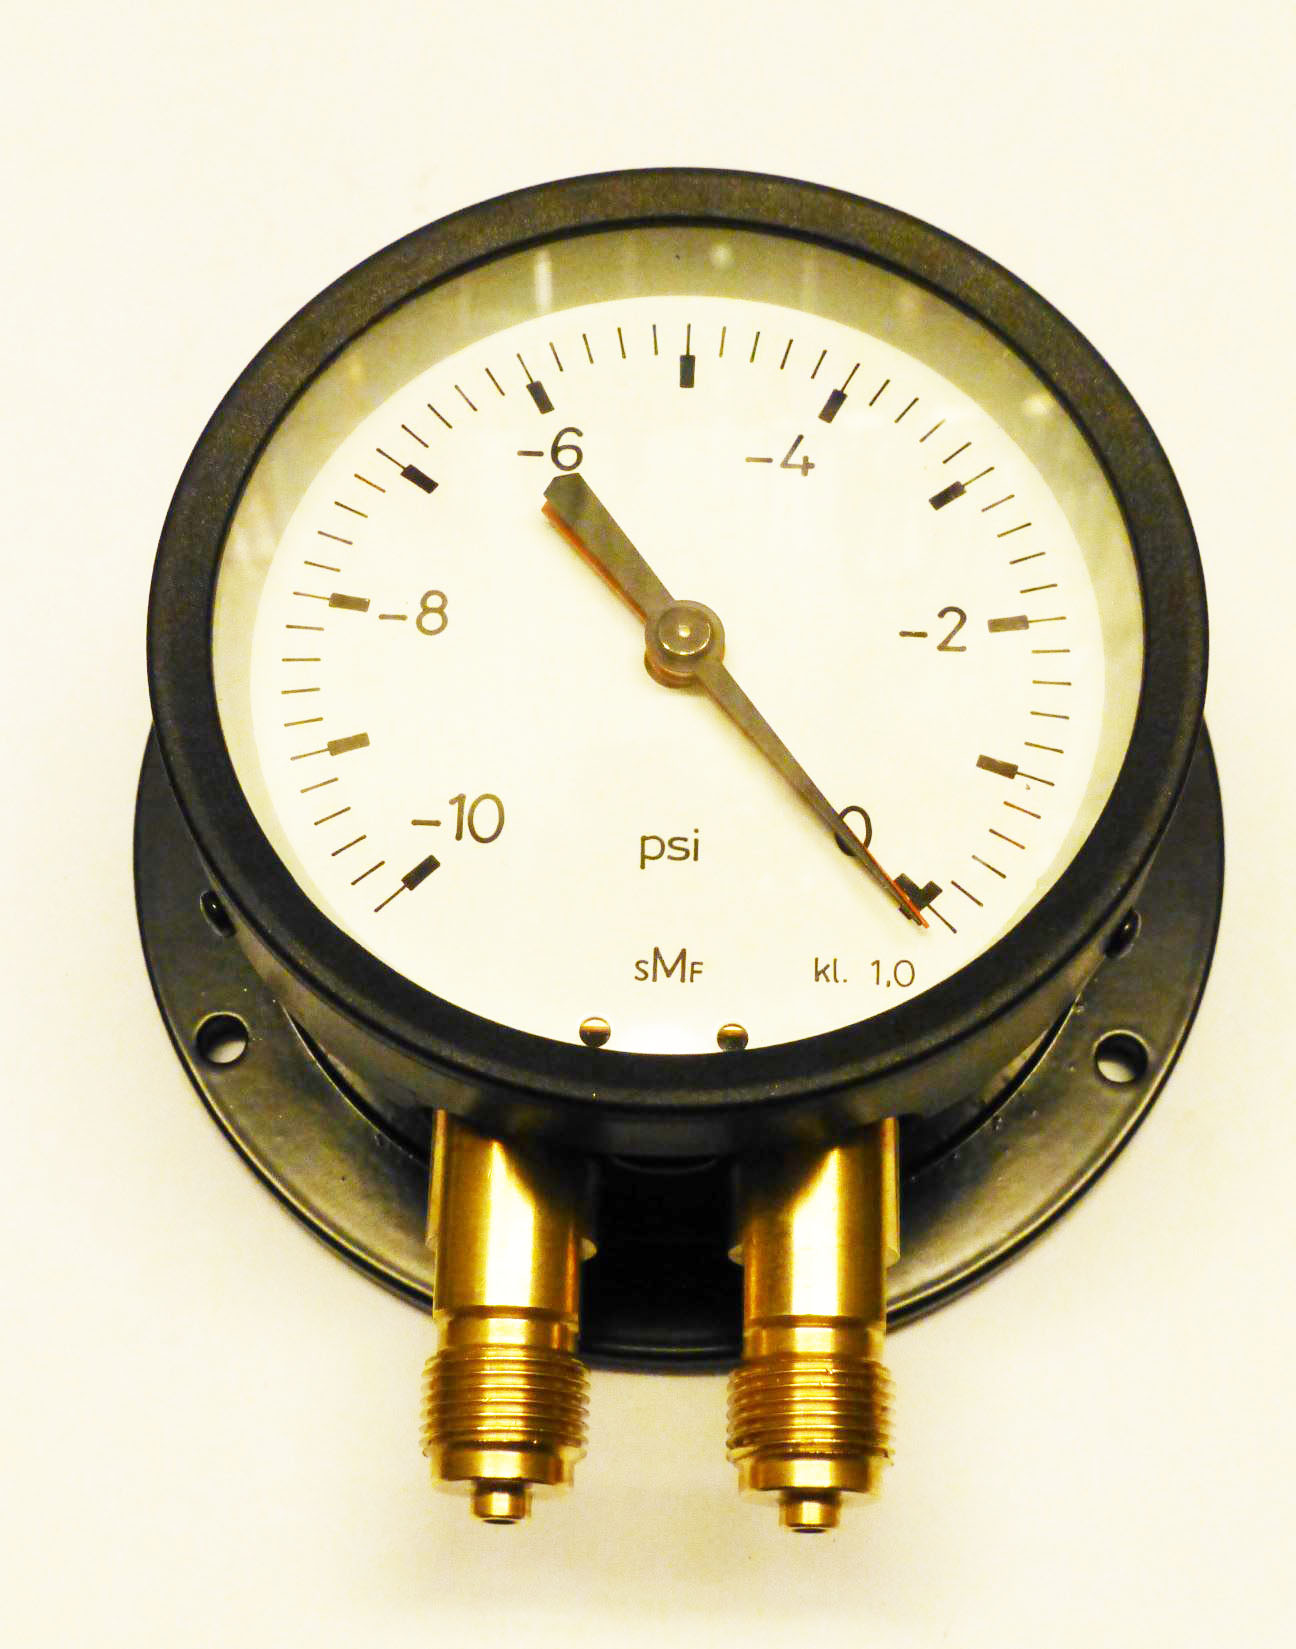 A new double gauges vacuum manometer for testing Mercedes Ponton ATE T50